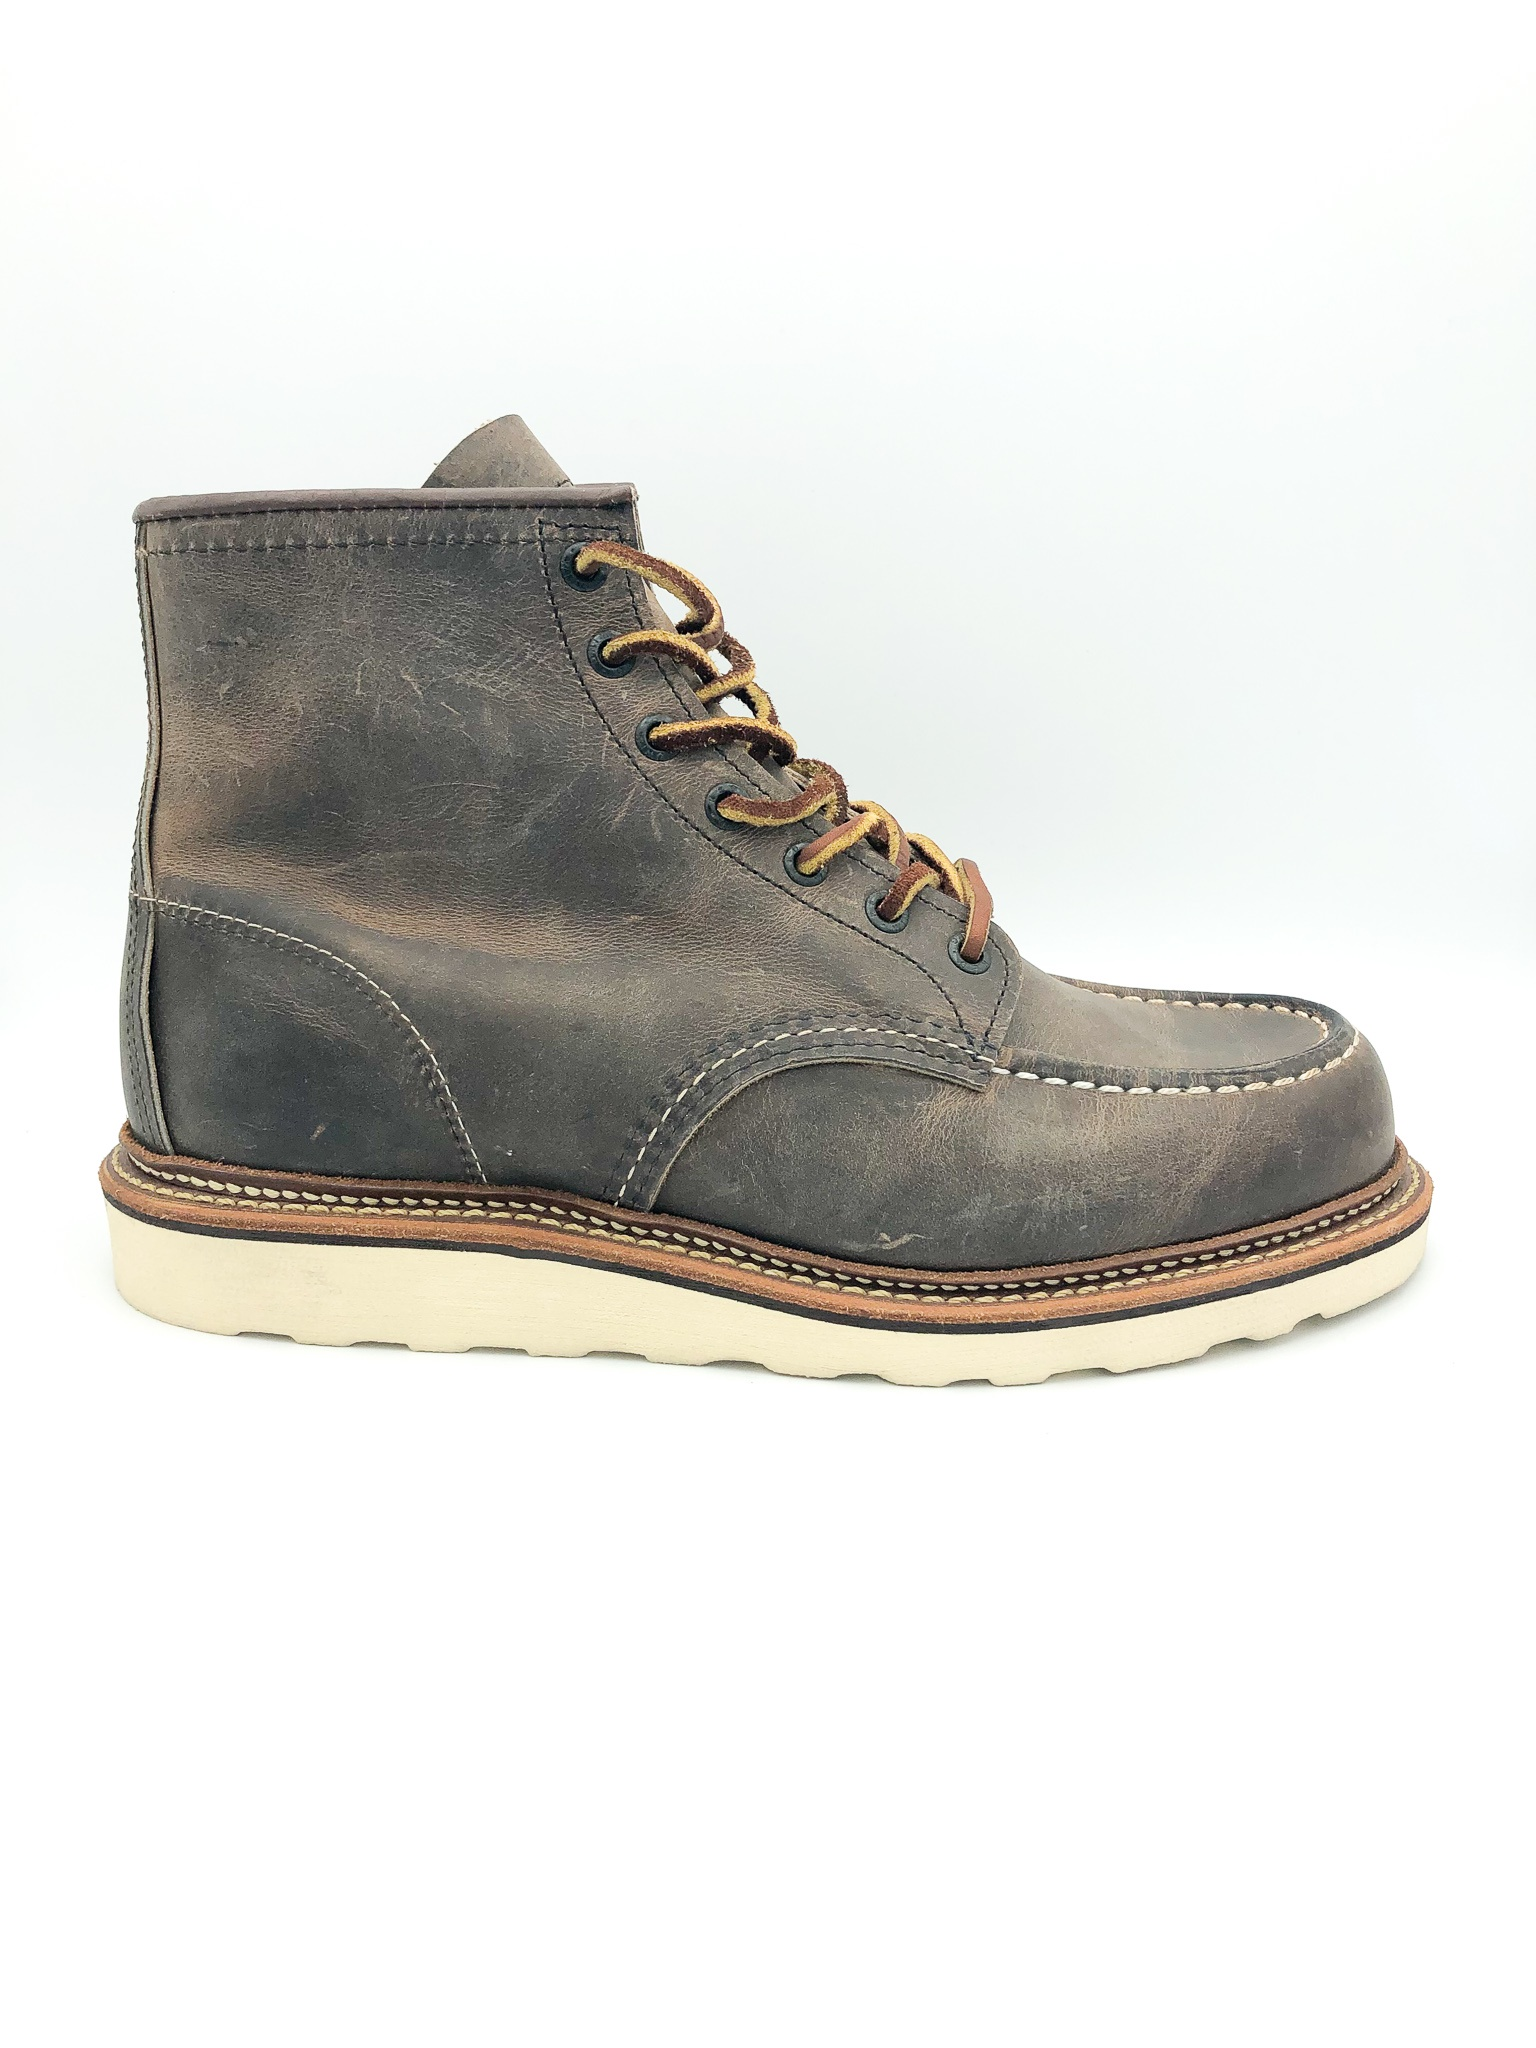 77111b365330 RED WING - MEN S CLASSIC MOC IN CONCRETE ROUGH AND TOUGH LEATHER - the  Urban Shoe Myth